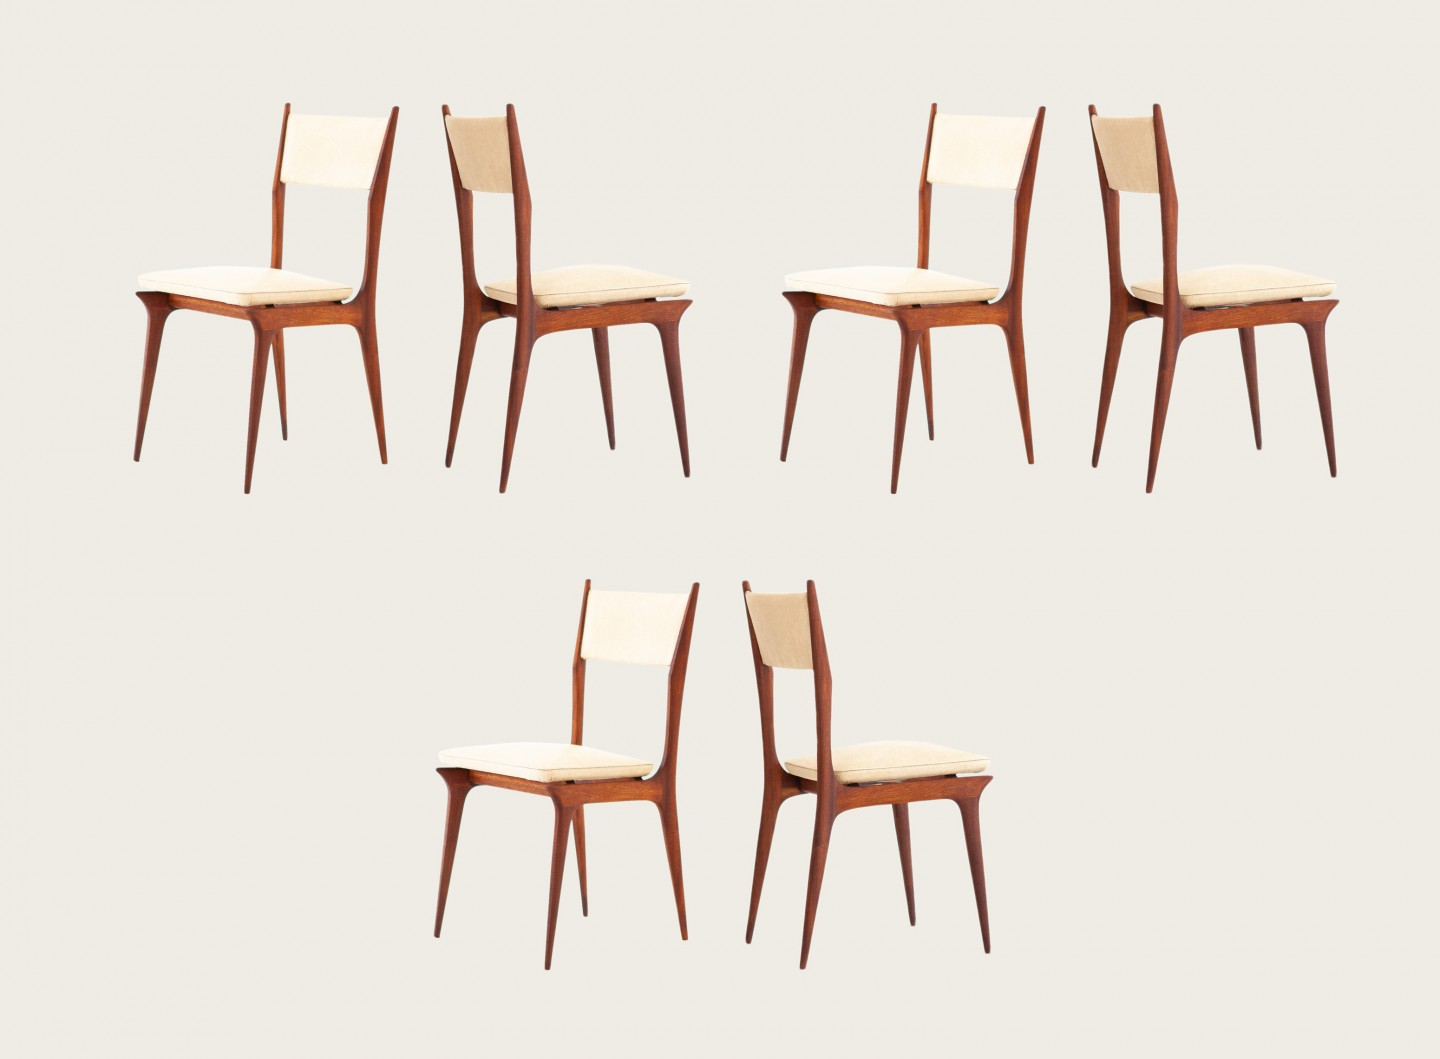 Set of Six Italian Mahogany and Beige Skai Dining Chairs SE281 – No longer available..